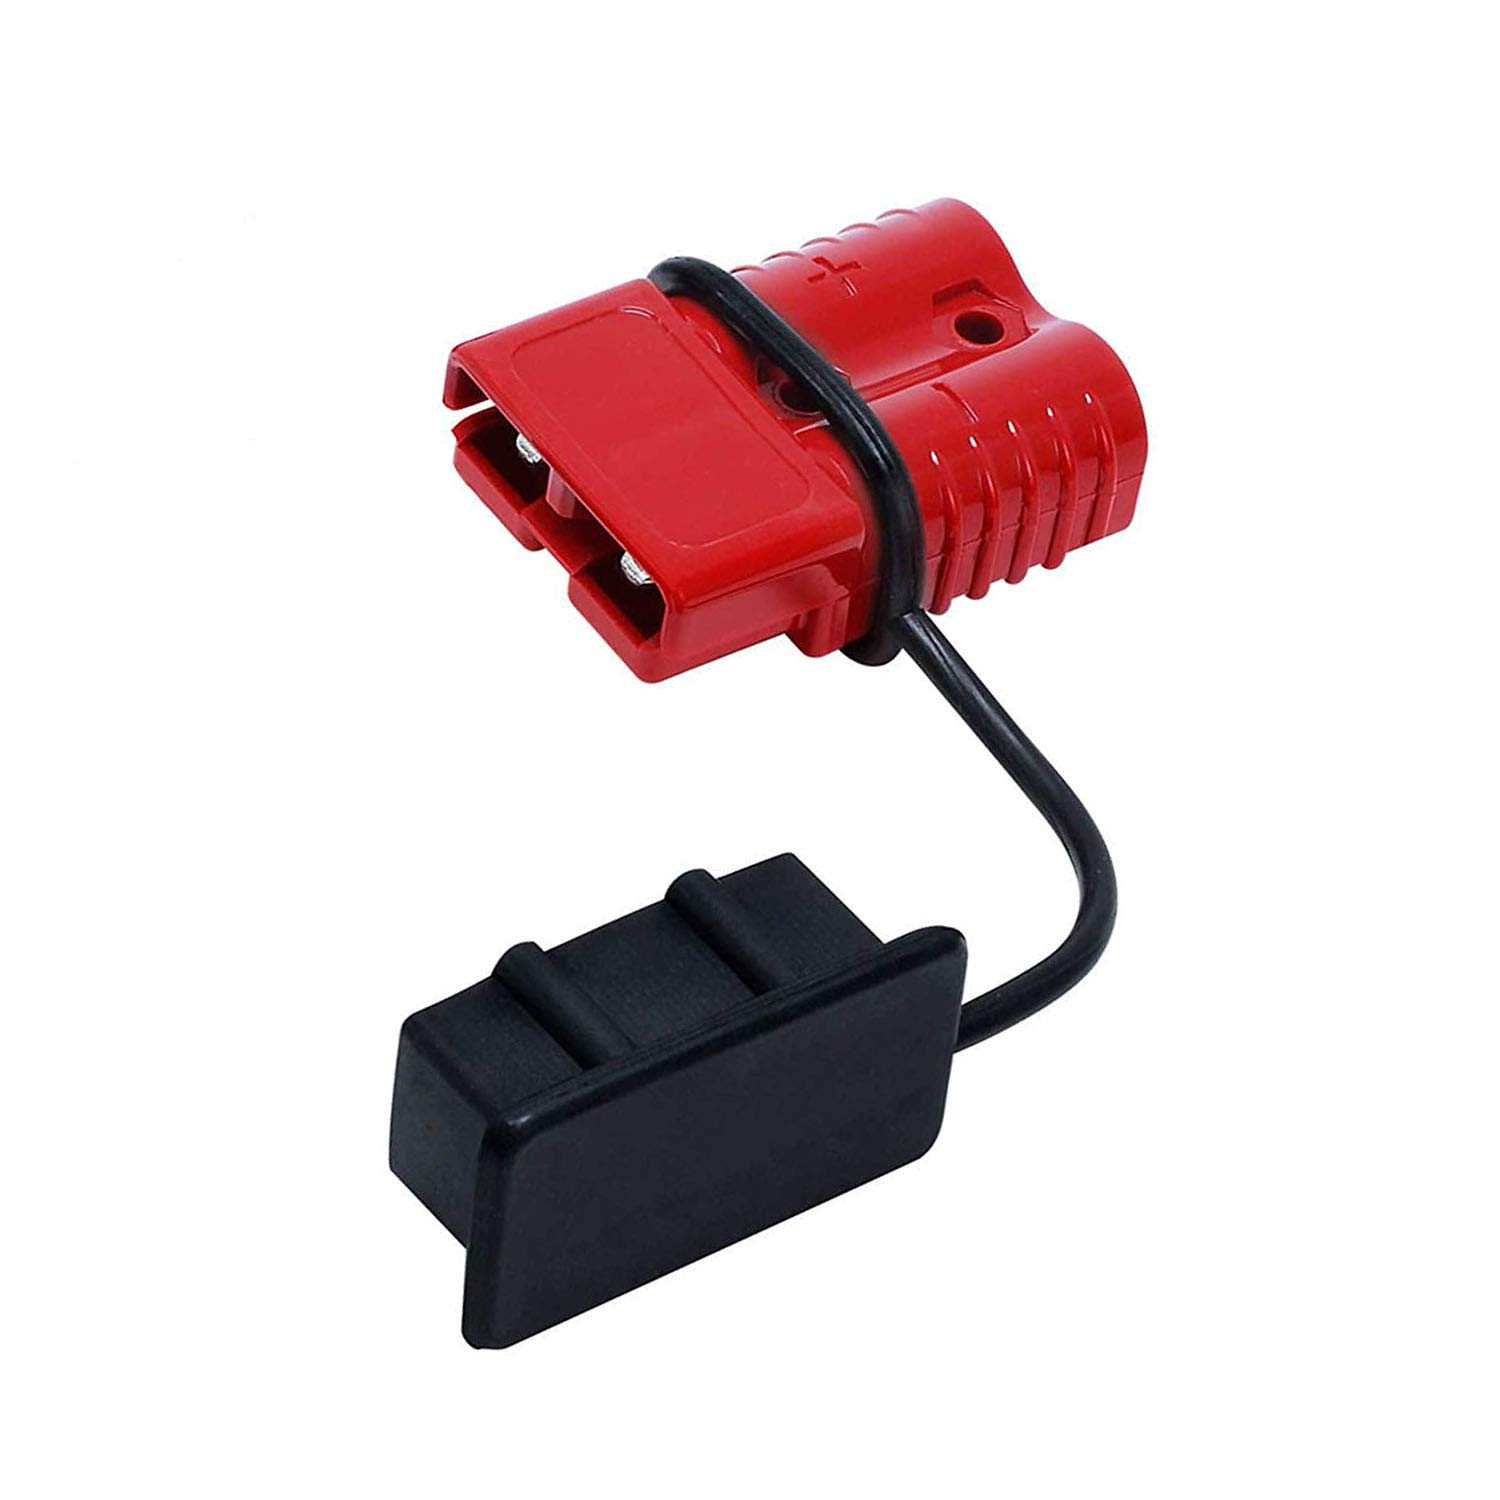 Liyafy Battery Quick Connect Disconnect Electrical Plug 2-4 Gauge 175 Amps for Recovery Winch or Trailer